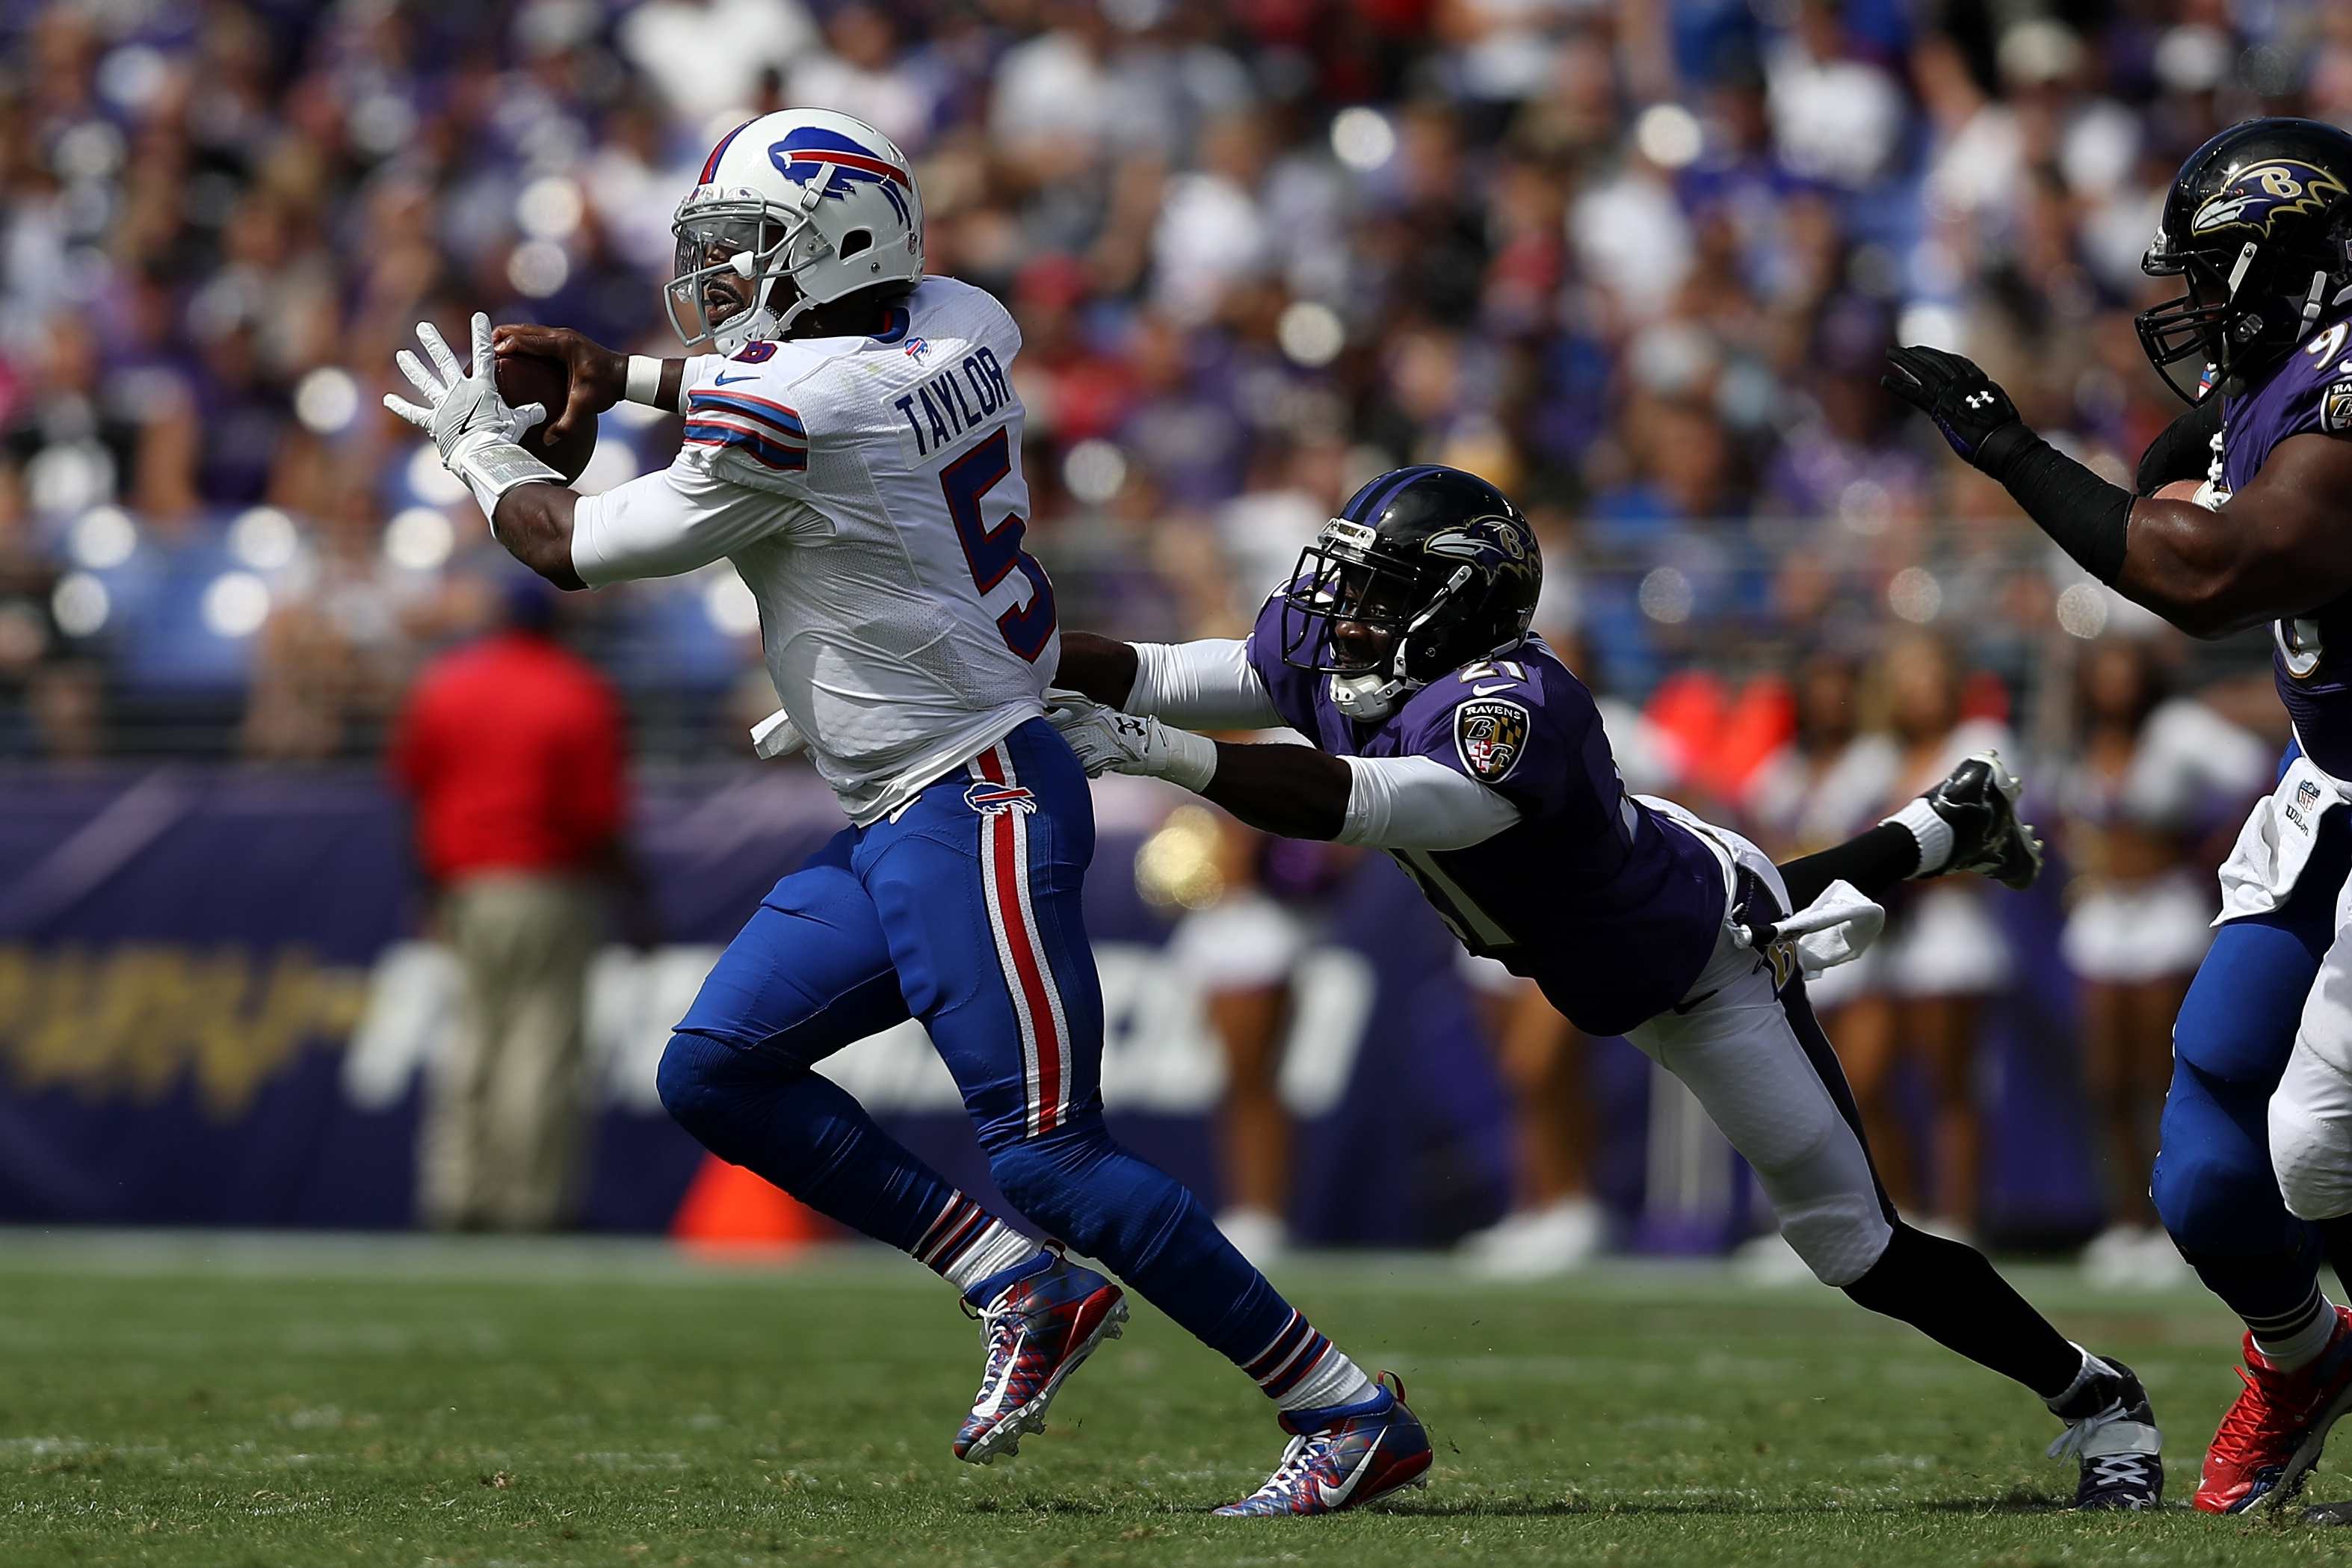 Tyrod Taylor attempts to throw the ball as he is tackled by cornerback Lardarius Webb.